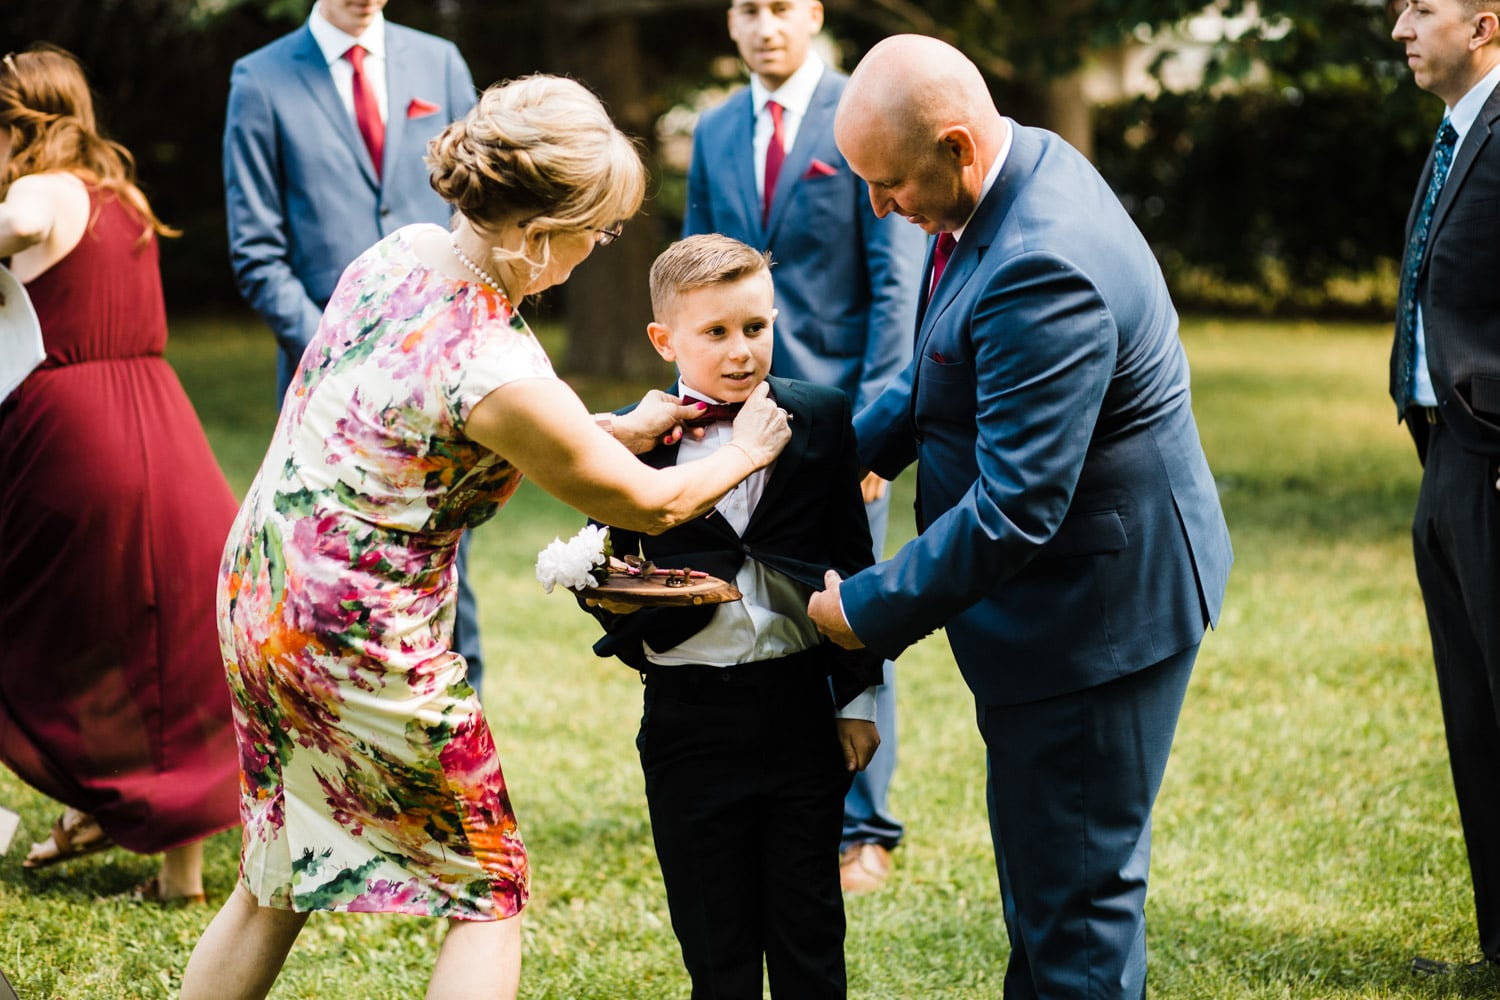 family adjusts ring bearers suit before ceremony